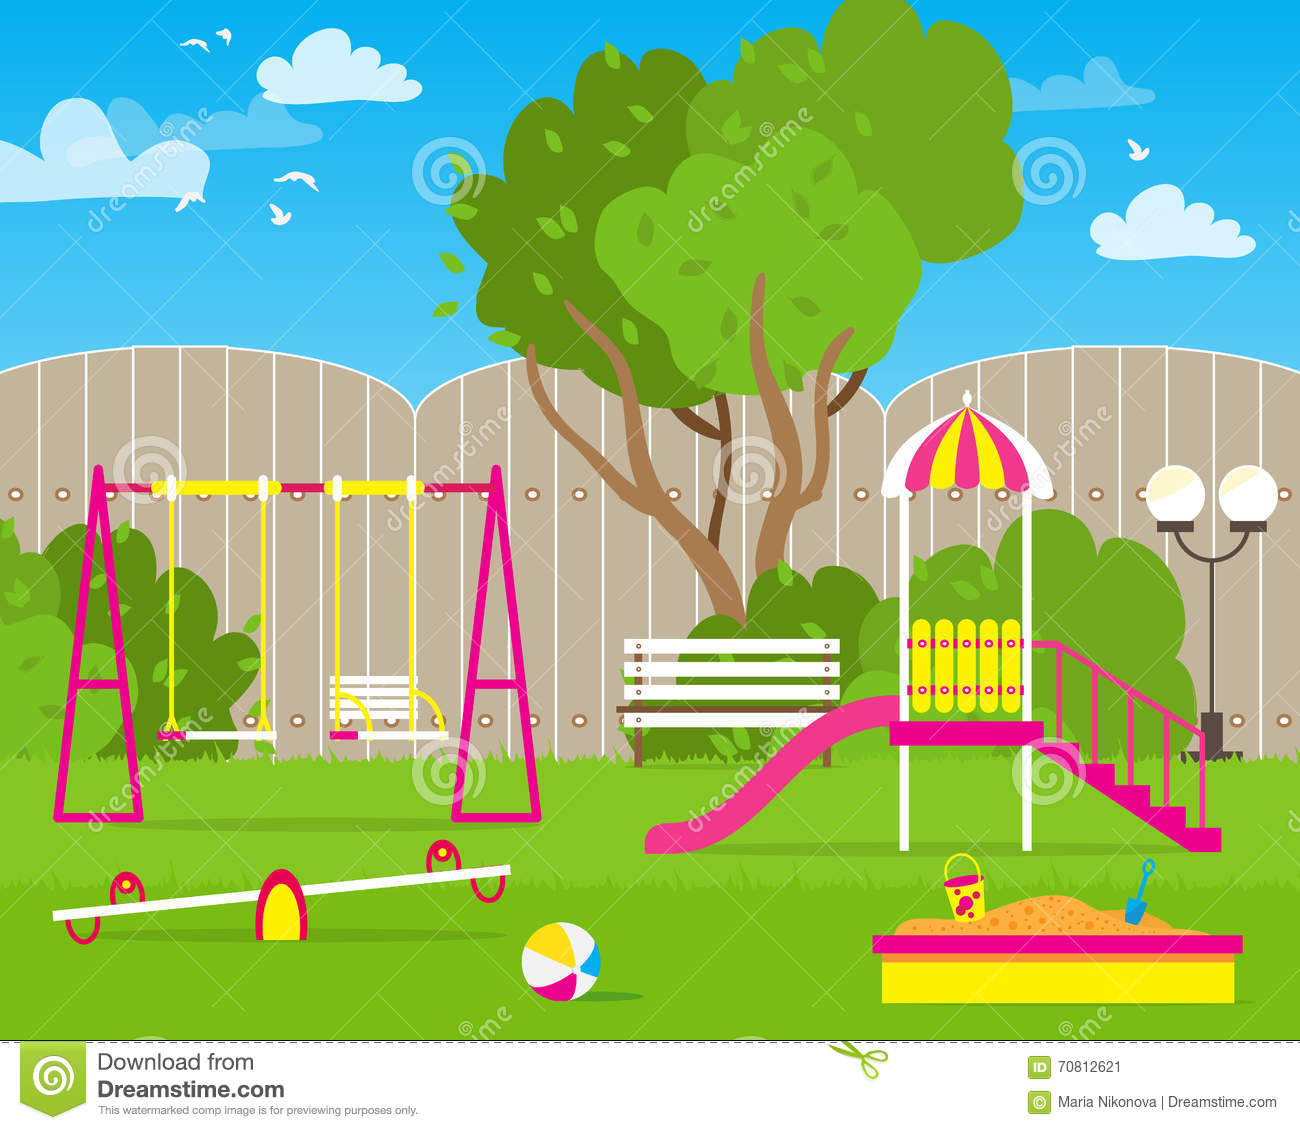 Schoolyard Cartoons, Illustrations & Vector Stock Images ...